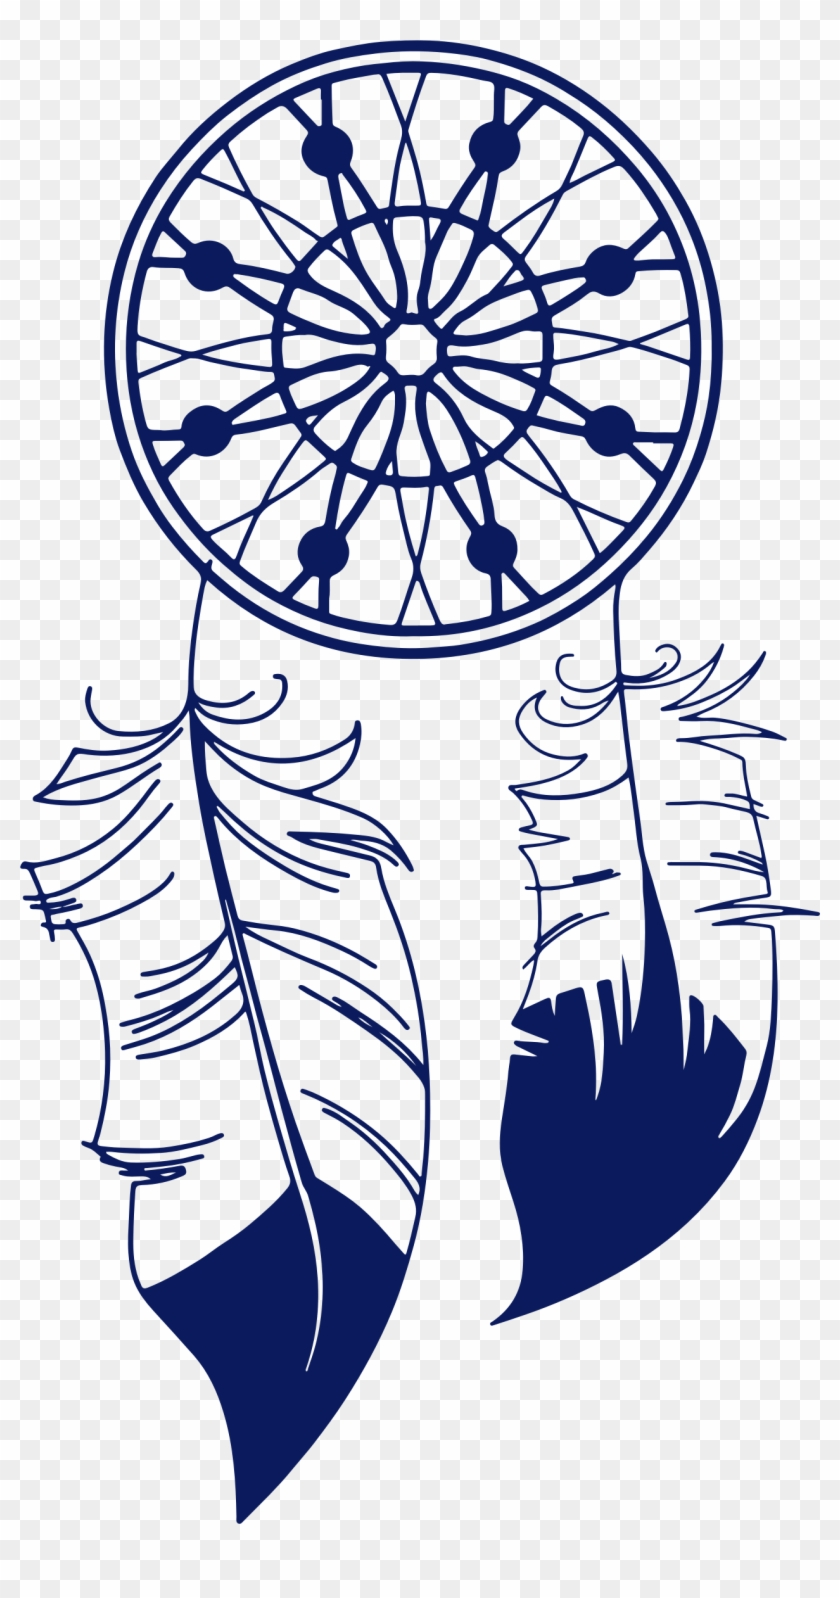 Dream Catcher Png - Dream Catcher Vector Png Clipart #151245